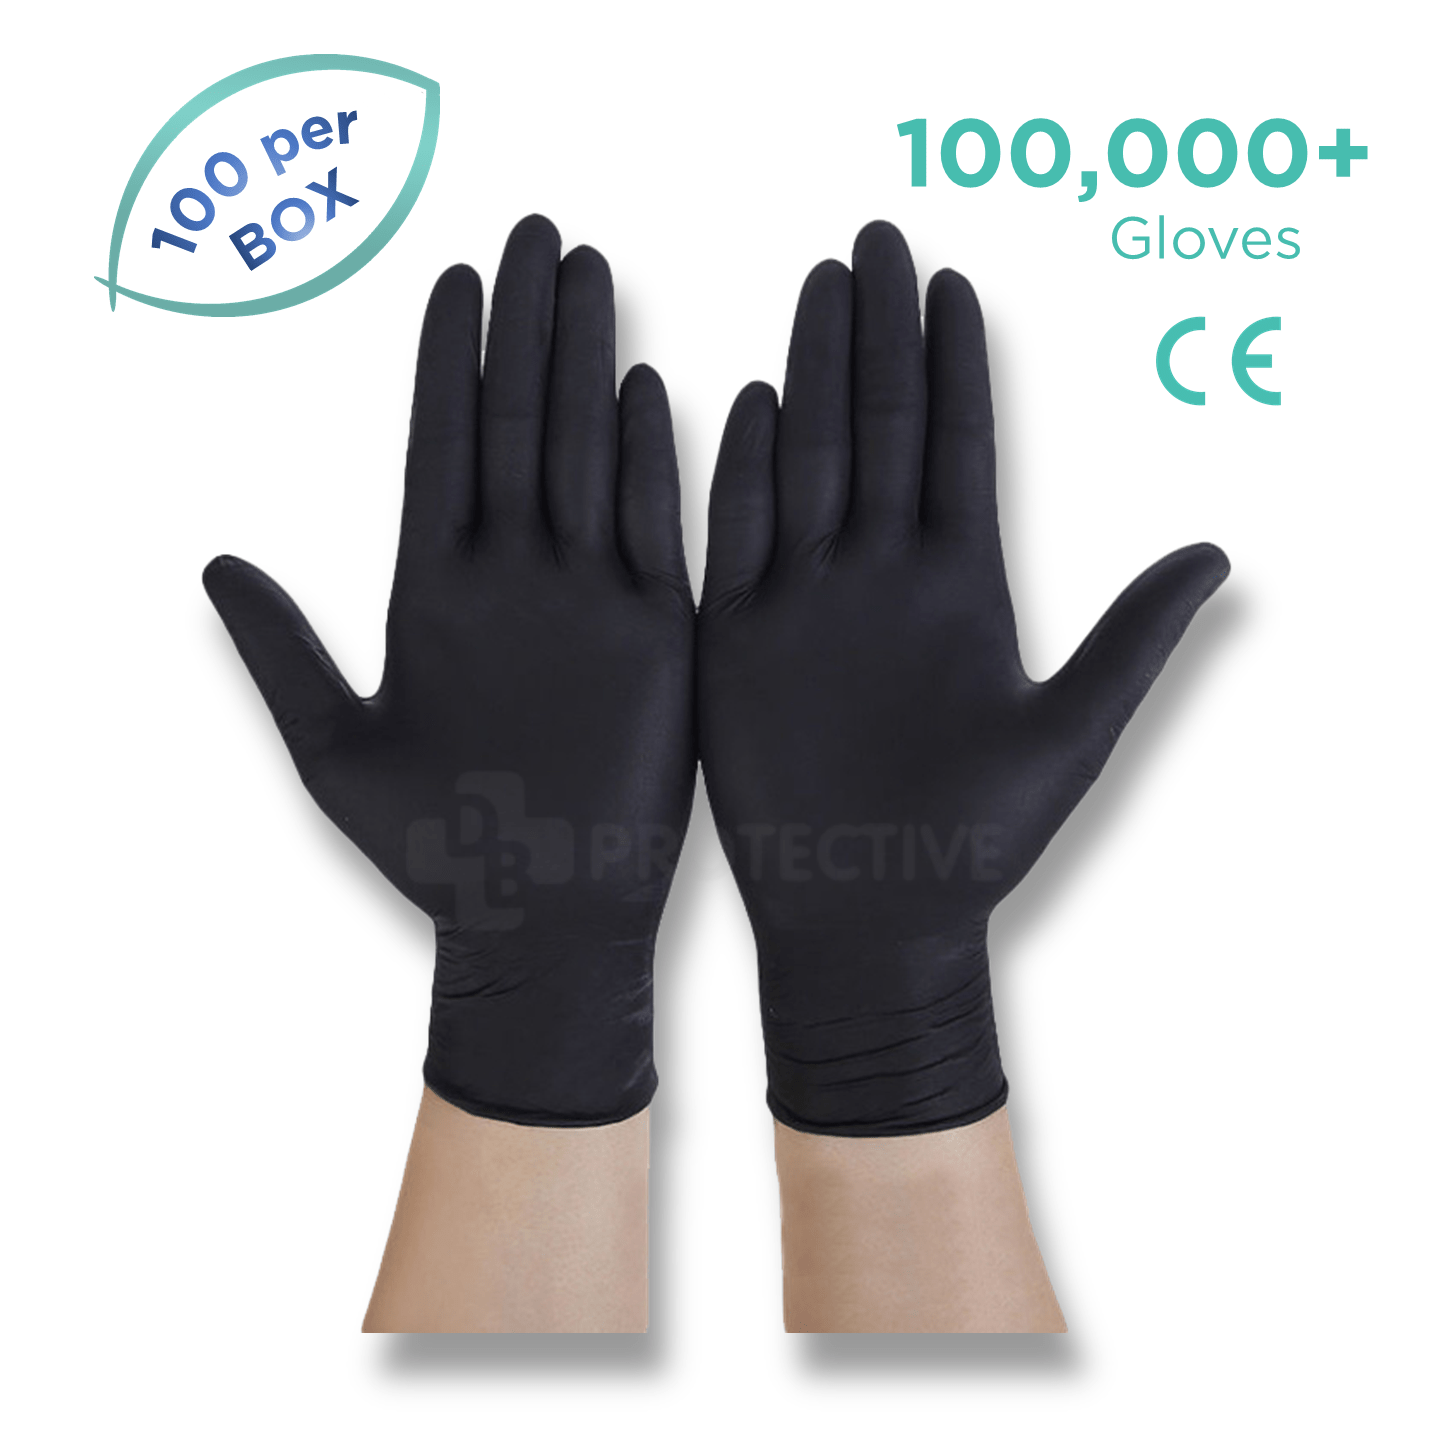 Black Nitrile Gloves - Pack of 100,000 - USA Medical Supply - DB Protective